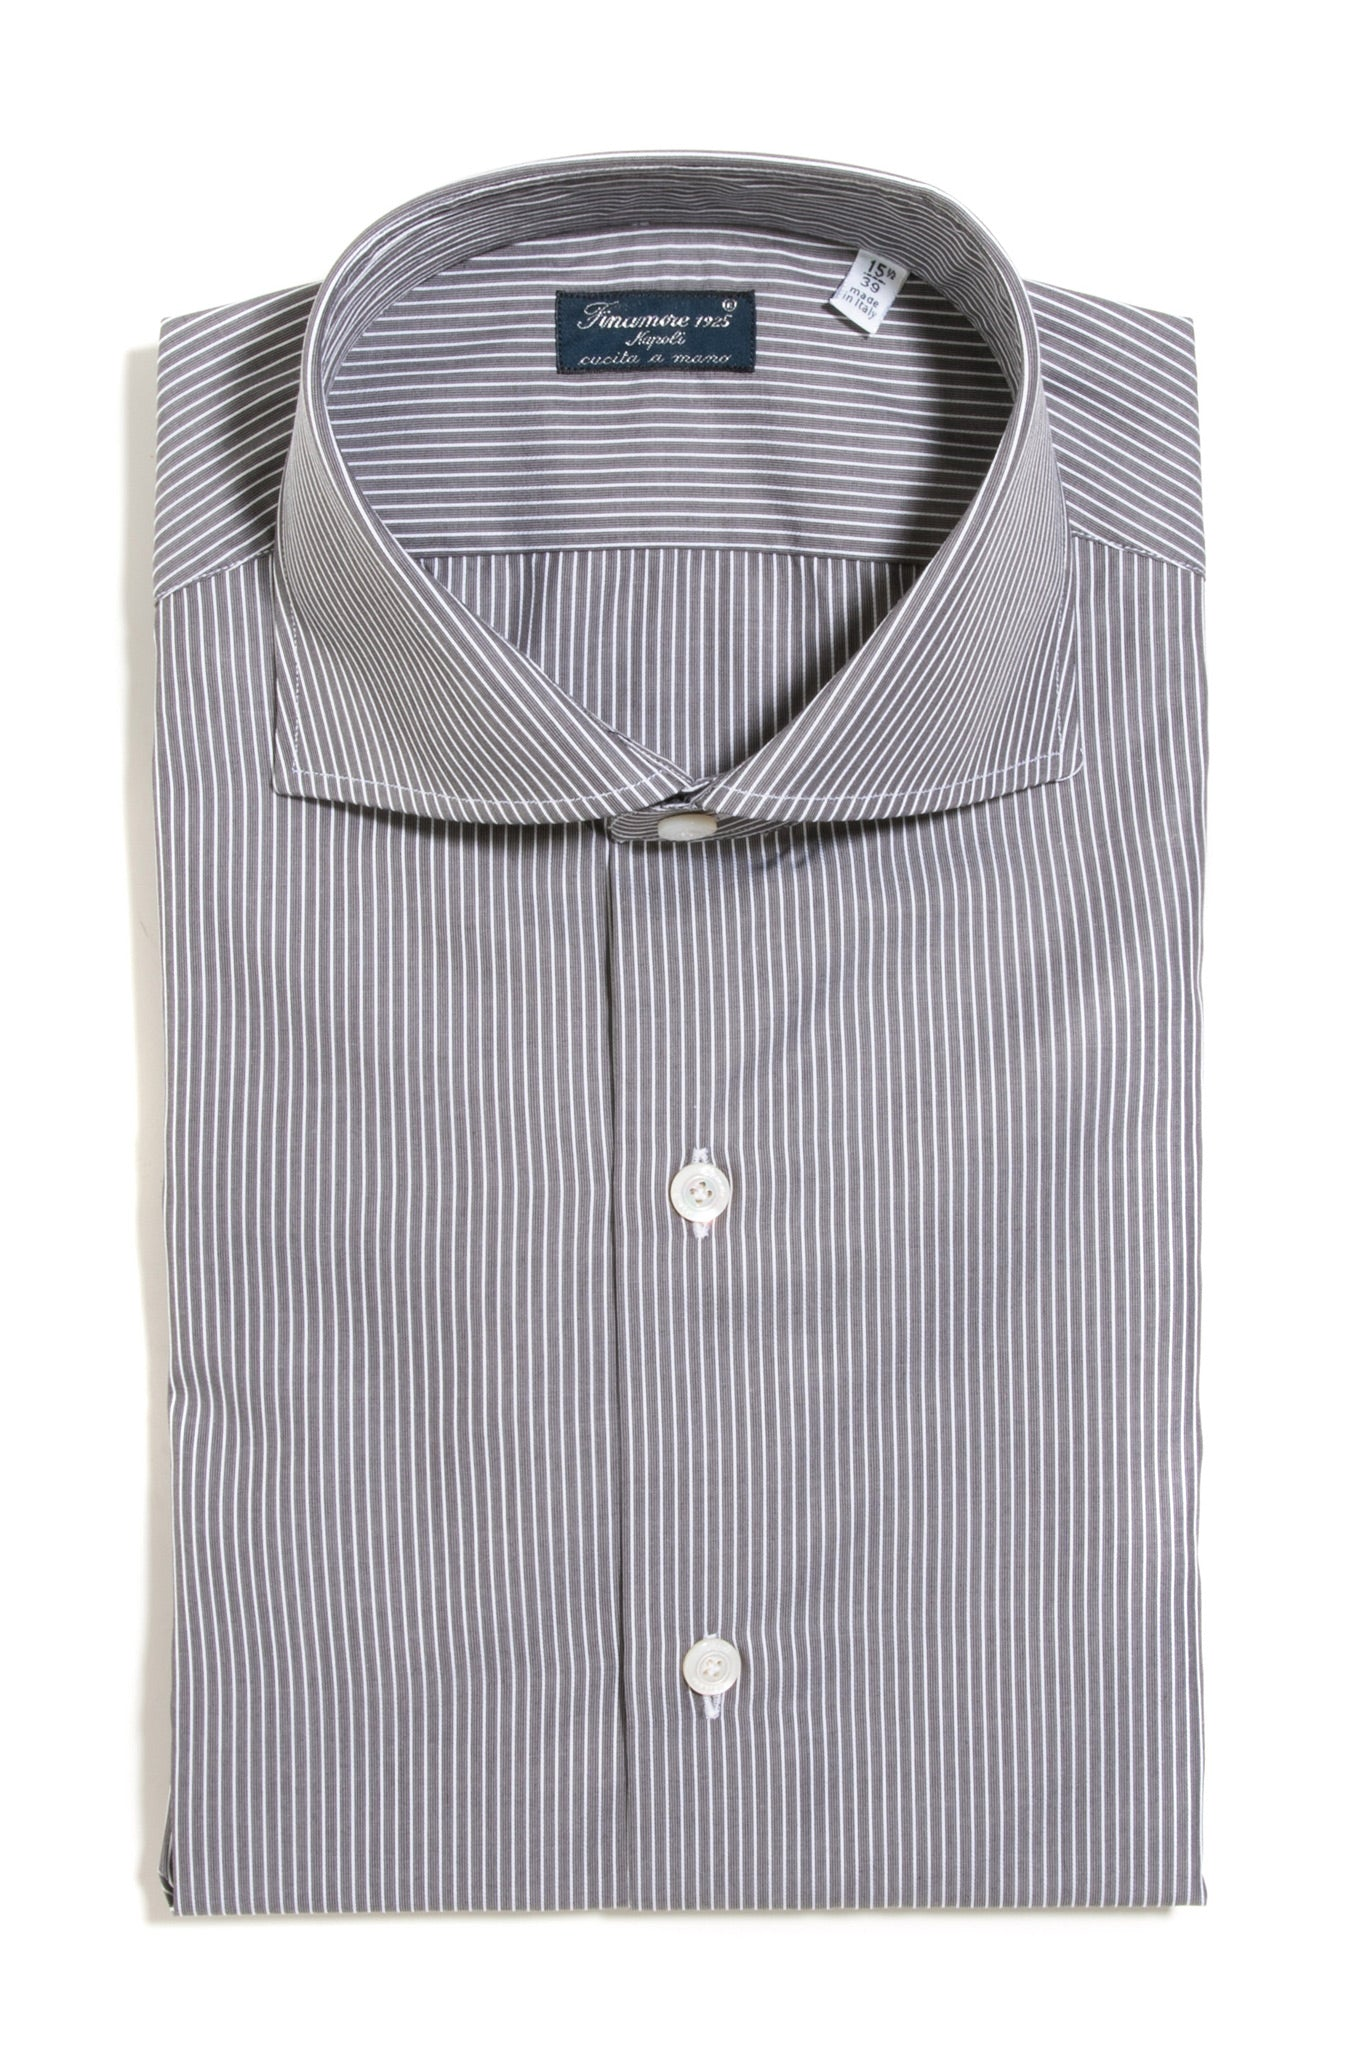 Finamore Gadda Dress Shirt (87937384472)